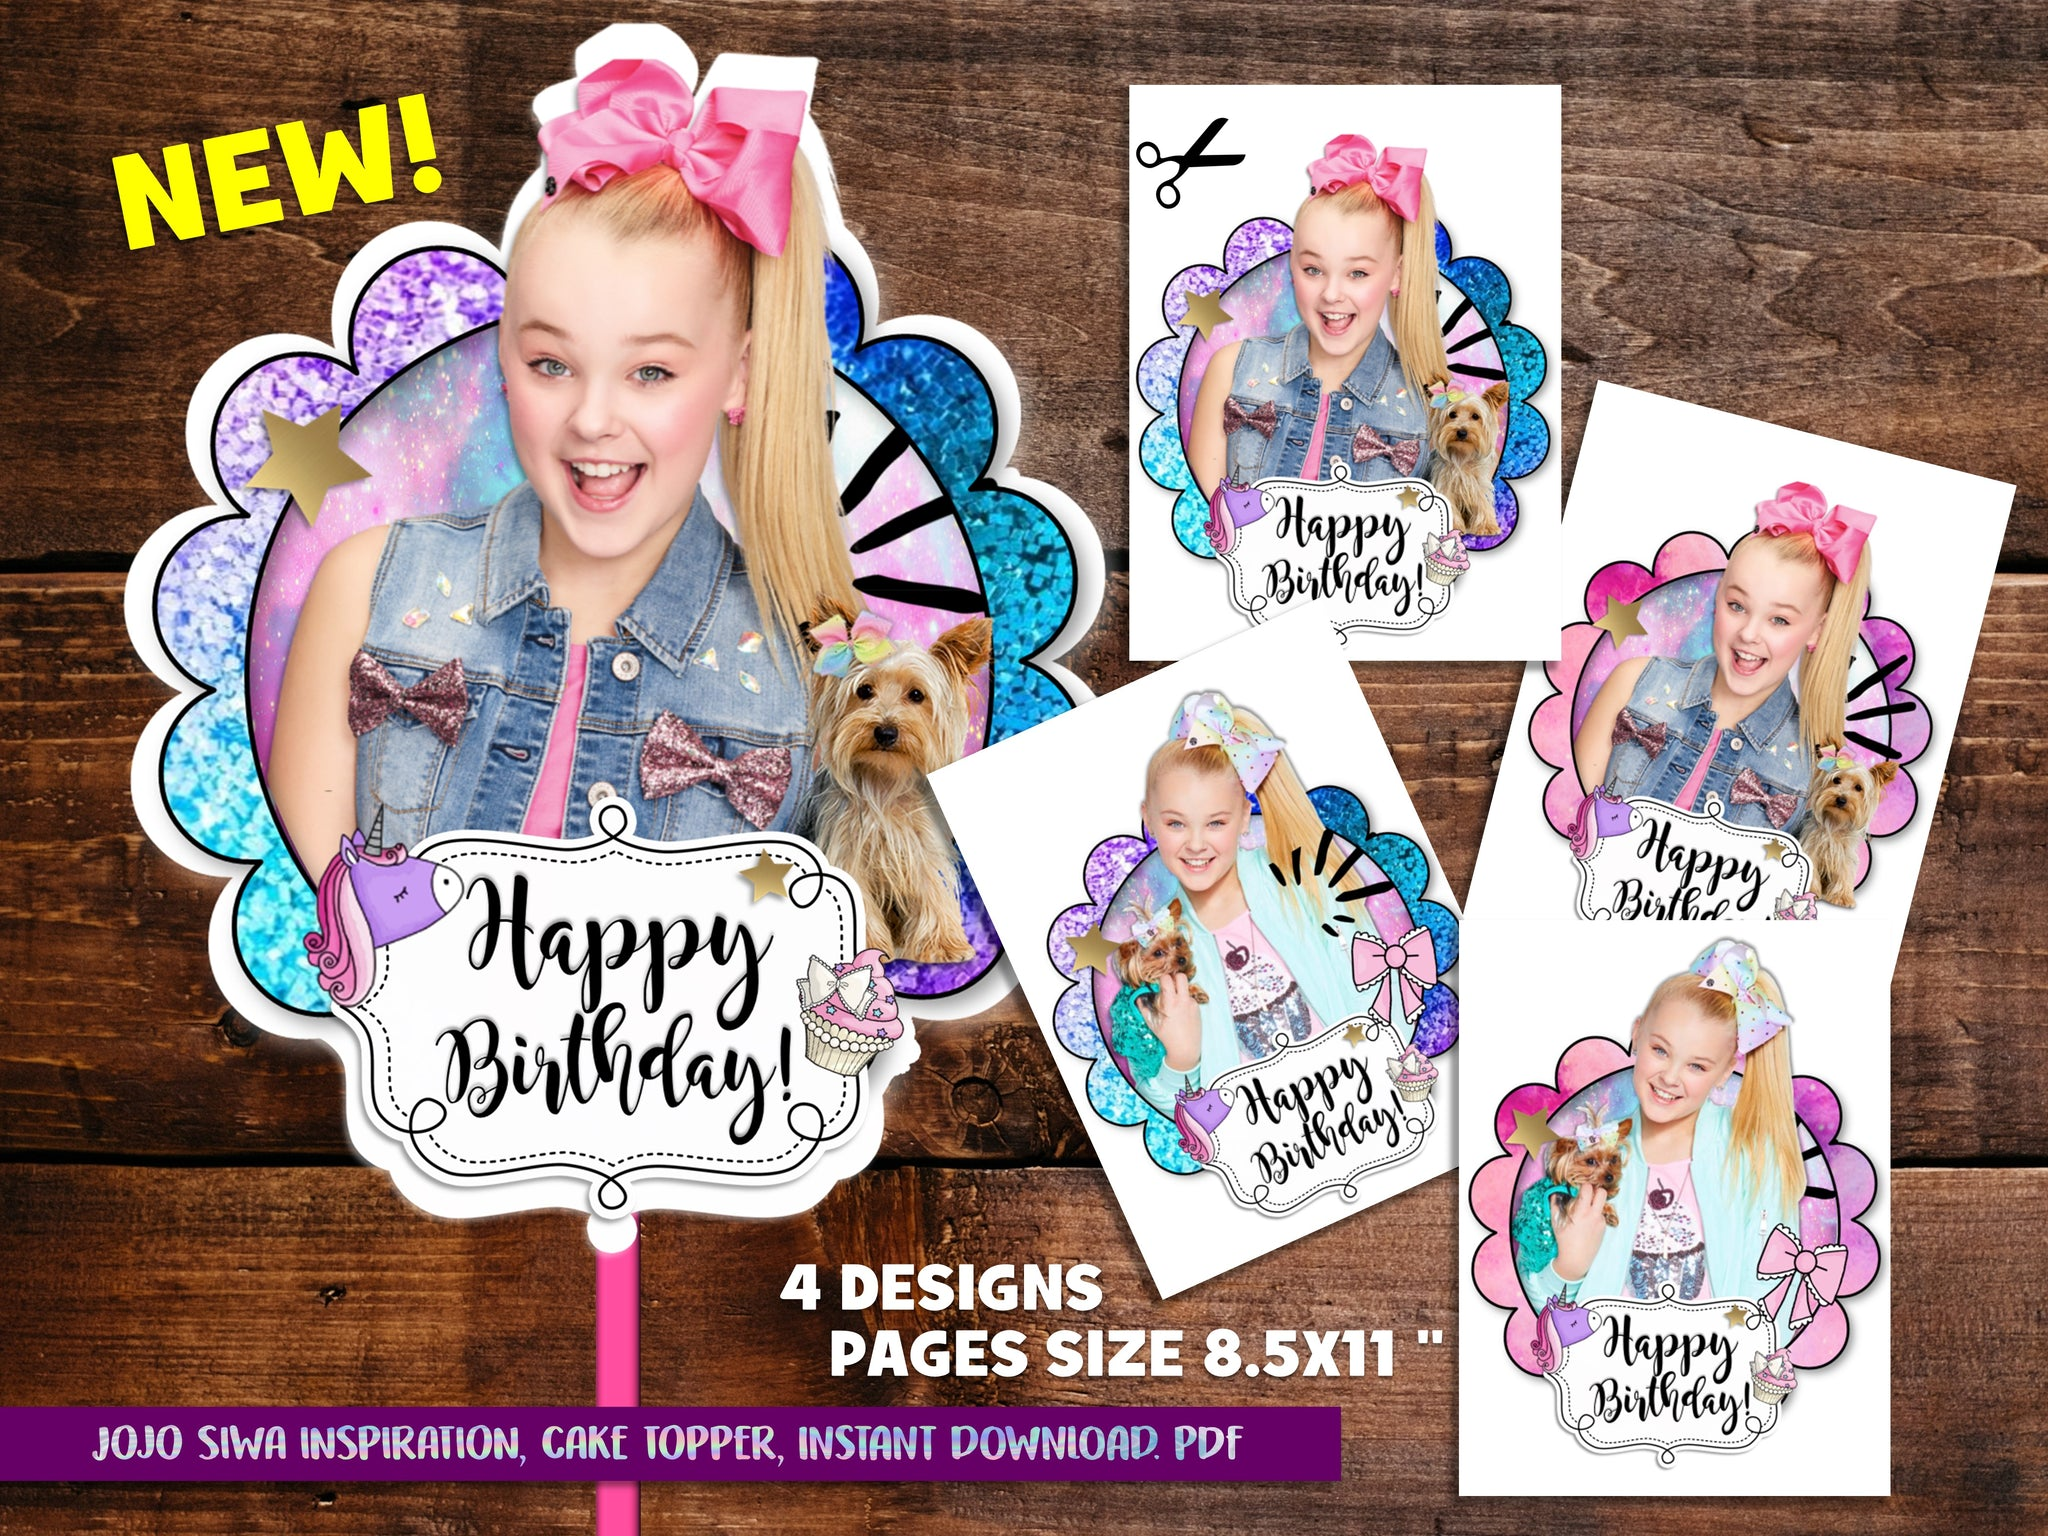 JOJO SIWA CAKE TOPPER, JOJO SIWA CENTERPIECES, JOJO SIWA PARTY IDEAS, JOJO SIWA PARTY PRINTABLES, JOJO SIWA DECORATIONS, JOJO SIWA PARTY SUPPLIES, JOJO SIWA INVITATION, JOJO SIWA BIRTHDAY, JOJO SIWA PARTY, JOJO SIWA PARTY THEME, JOJO SIWA INSTANT DOWNLOAD, JOJO SIWA FIESTA, JOJO SIWA INVITACION